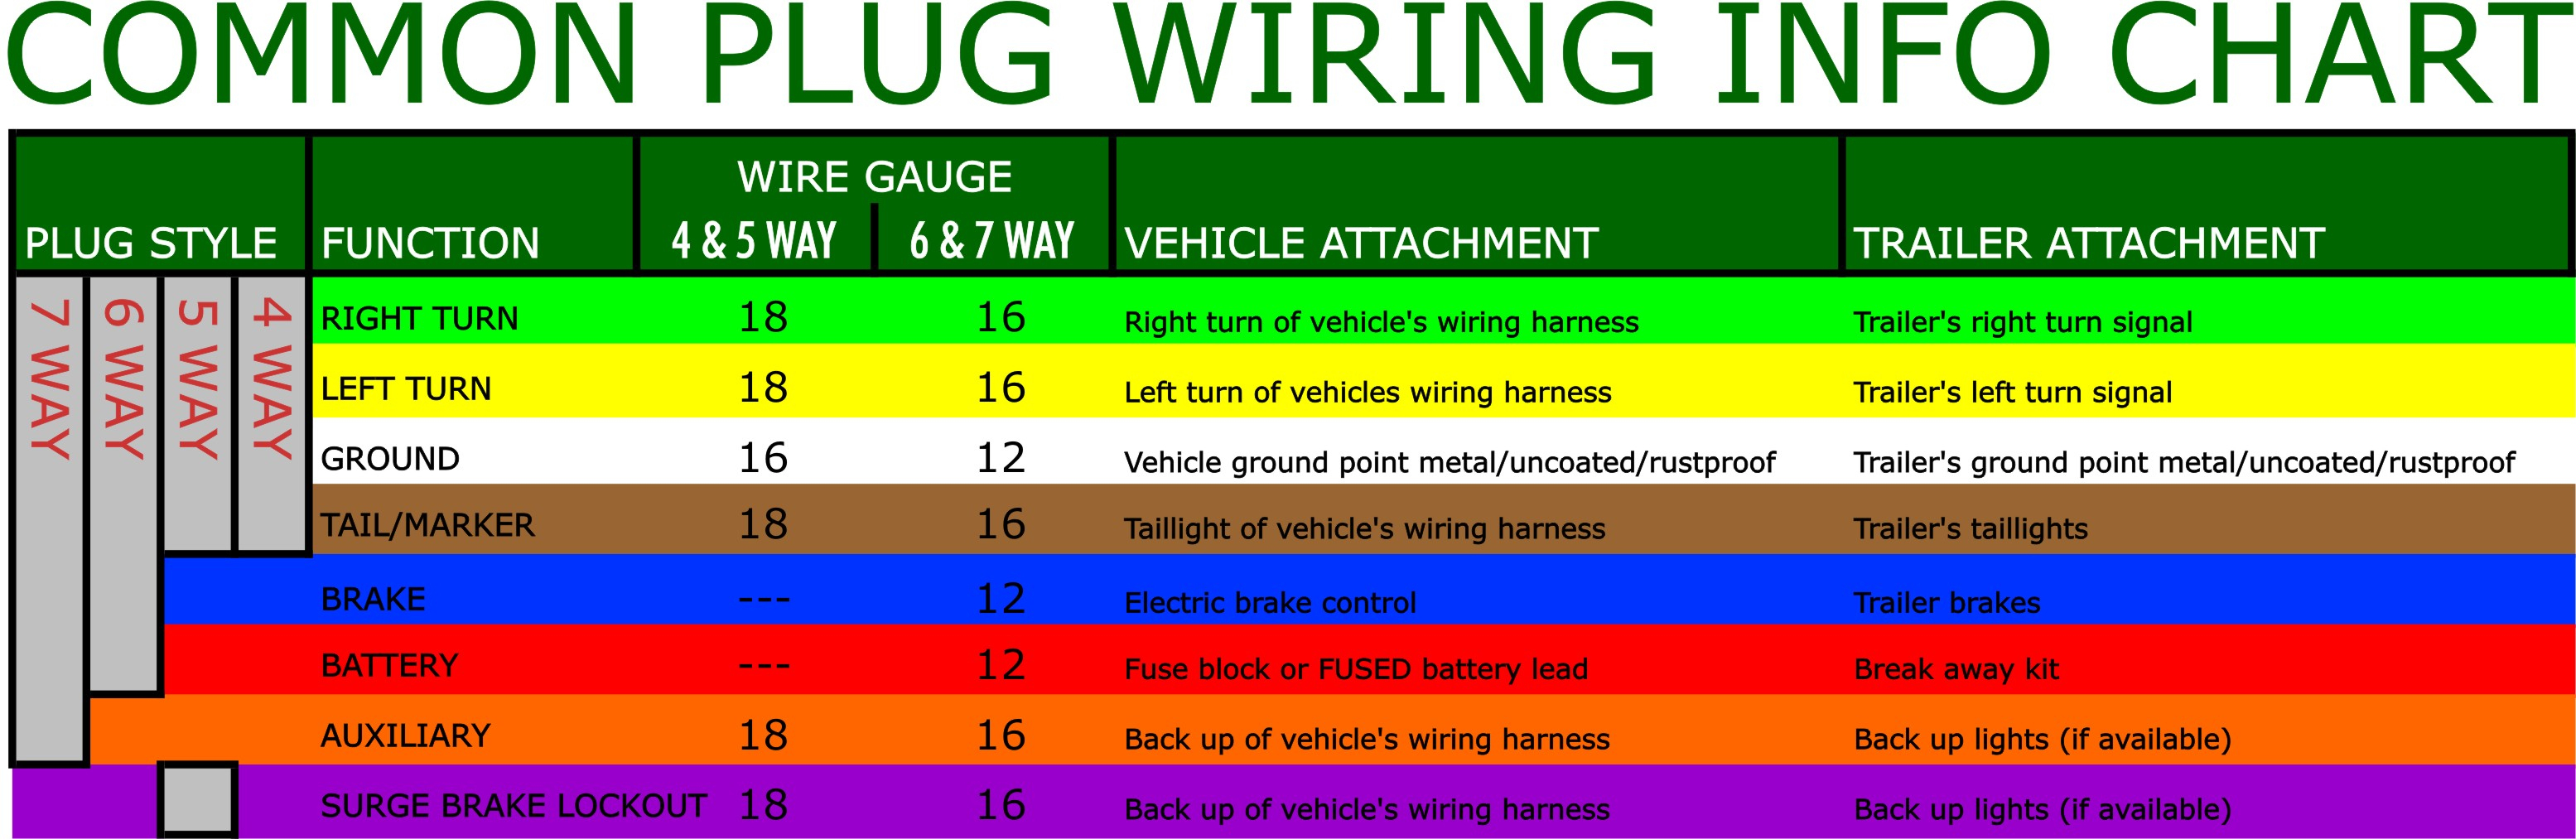 What Are The Most Common Trailer Plugs? - 5 Pin Trailer Wiring Diagram With Brakes